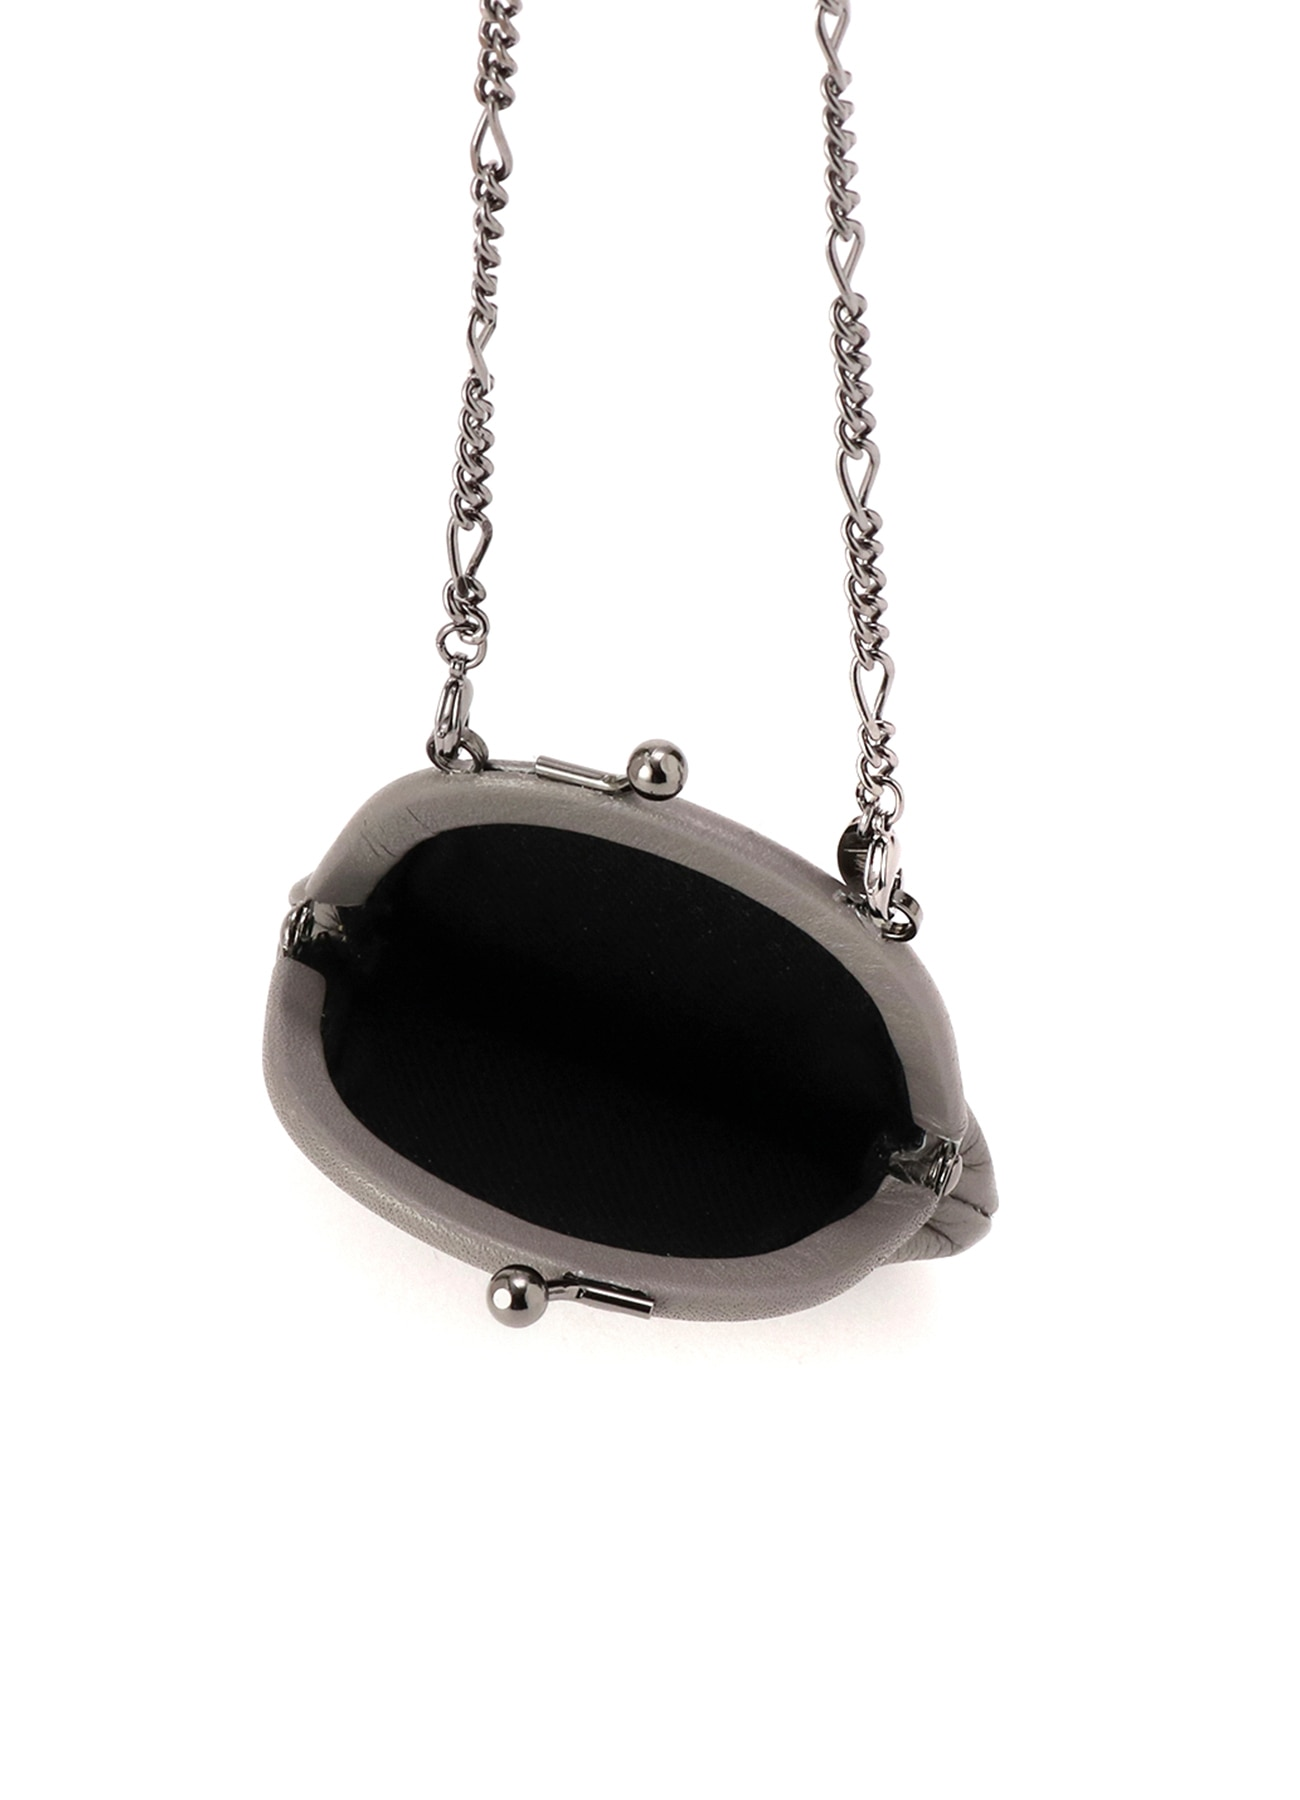 Necklace type coin case​ ​